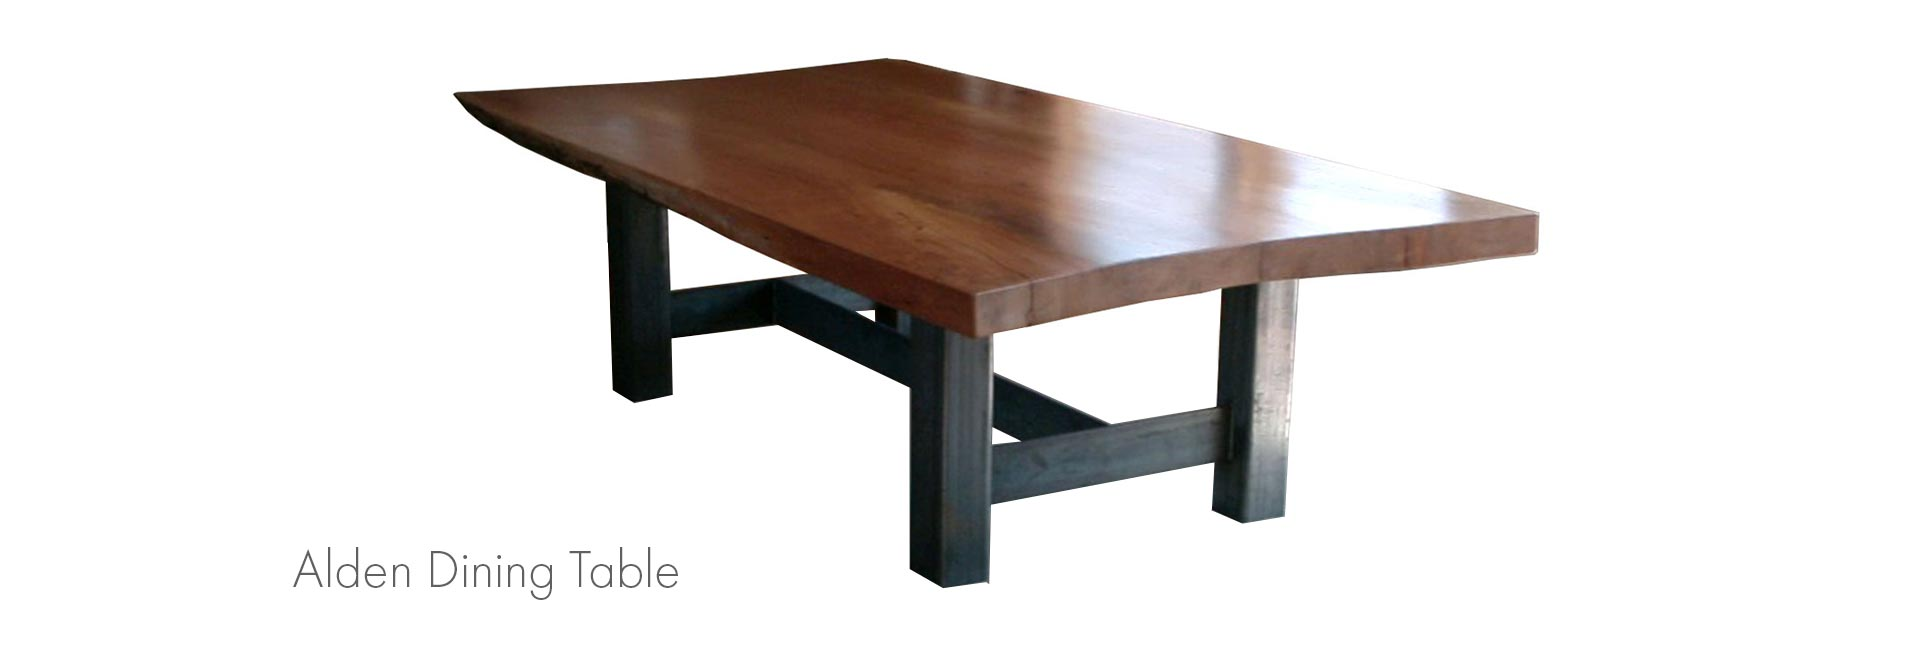 Alden-Dining-Table-Featured